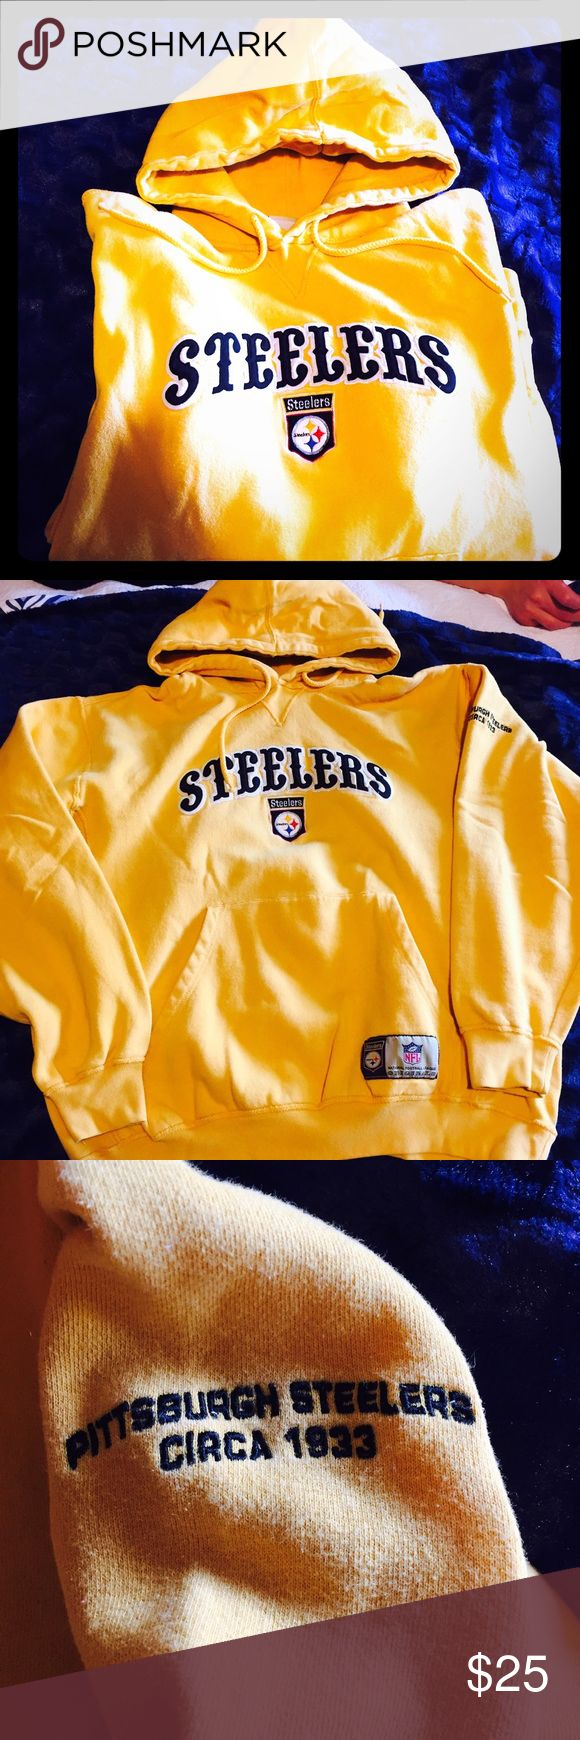 "NFL Pittsburgh Steeler's Hoodie Size L 85/15 Cotton blend hoodie.  Steelers logo in from and ""PITTSBURGH STEELERS CIRCA 1933"" on left sleeve. Gently worn and in excellent condition. NFL Originals Shirts Sweatshirts & Hoodies"